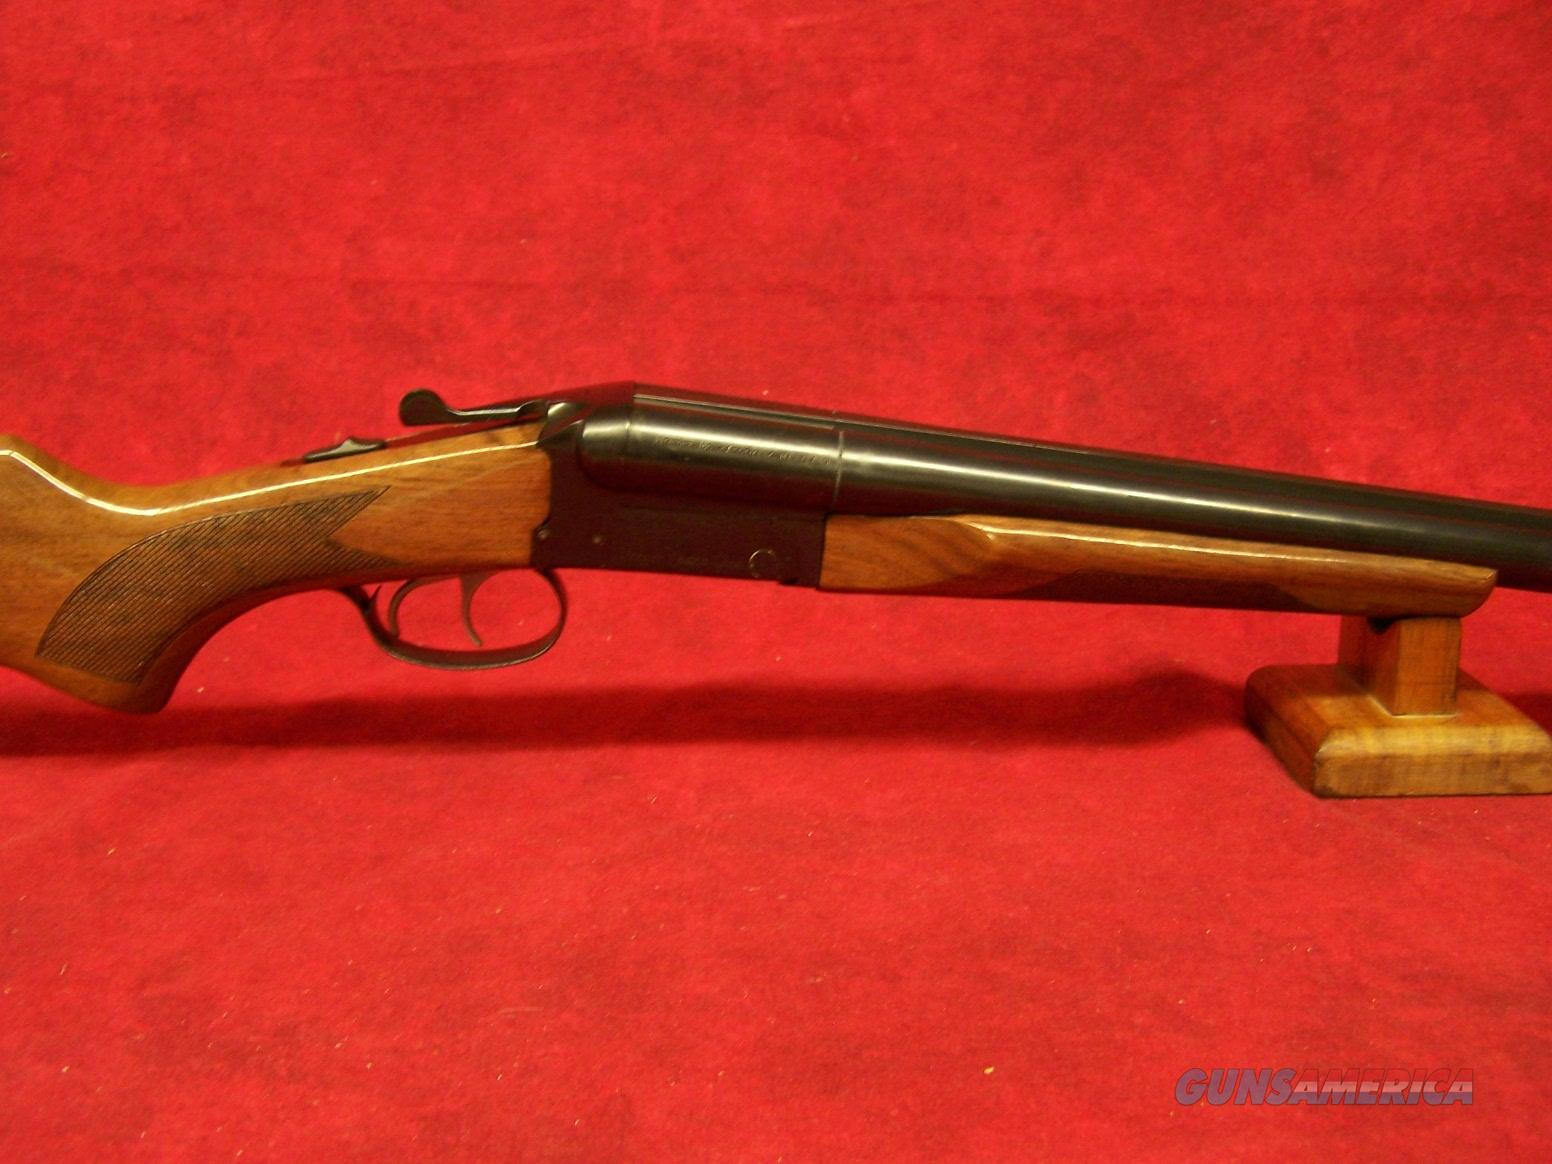 "Stoeger Coach Gun Supreme 12Ga 3"" SxS AA-Grade Gloss Walnut Blue 20"" Barrel (31481)  Guns > Shotguns > Stoeger Shotguns"